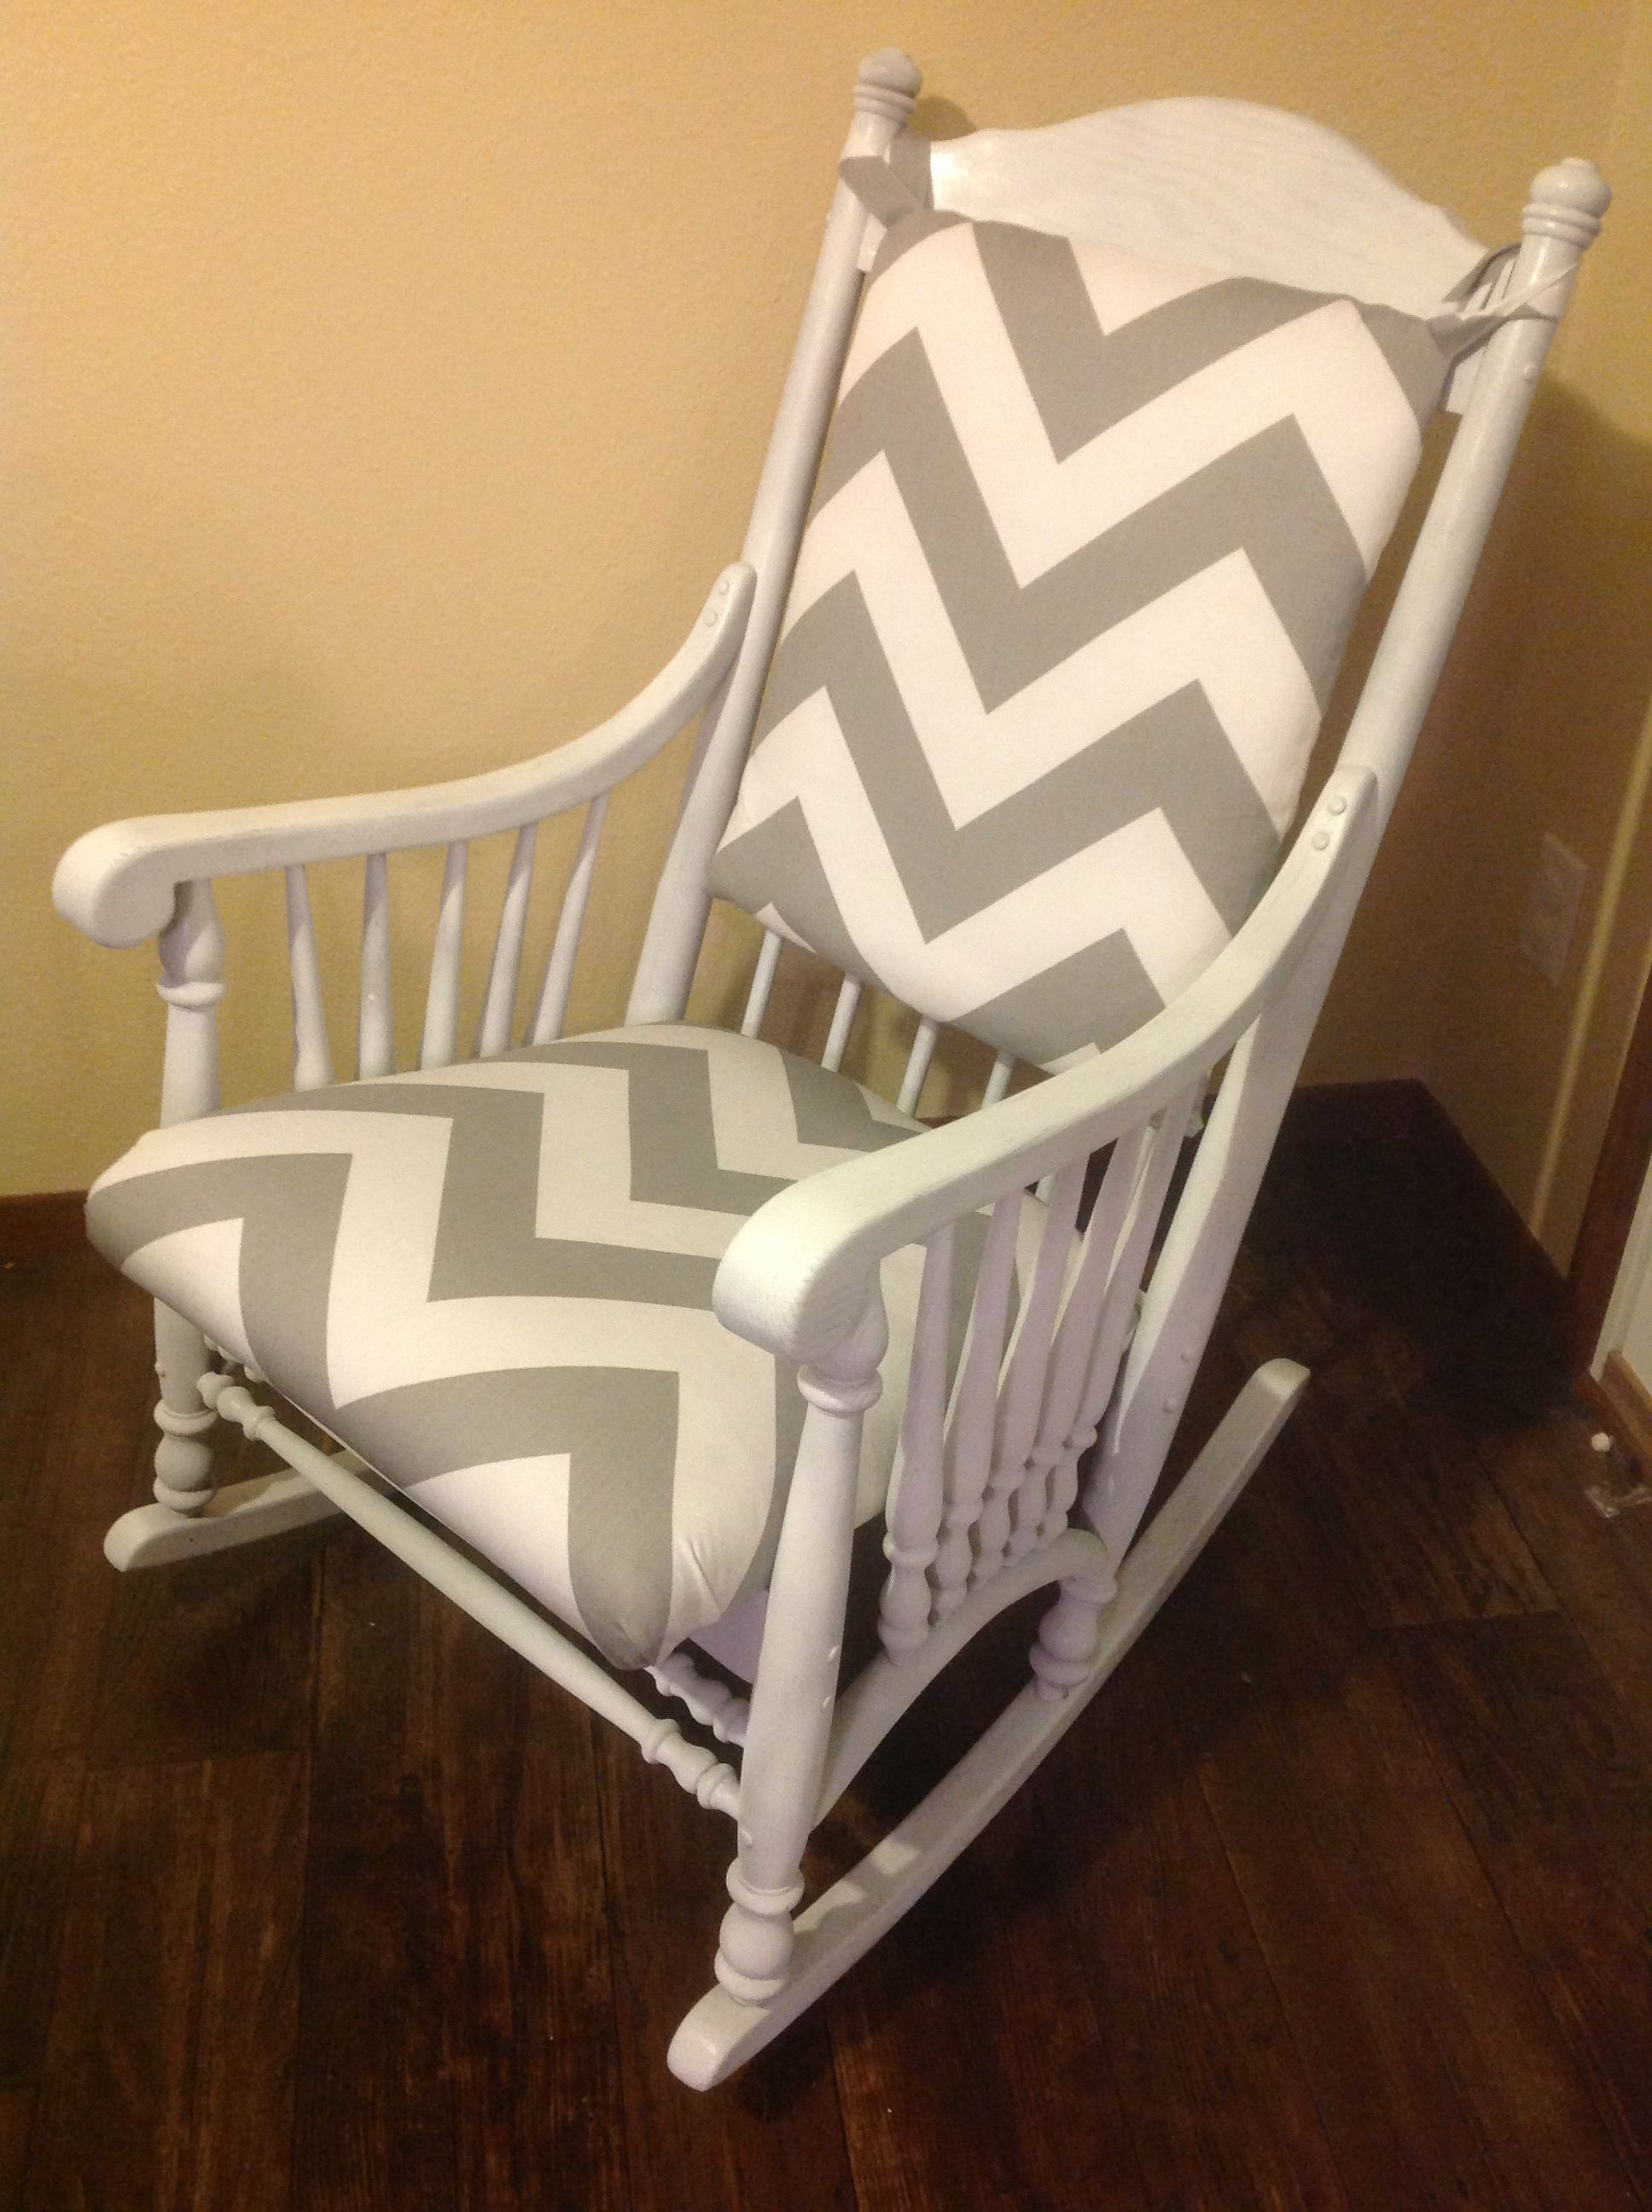 Nursery Wooden Rocking Chair Just Refinished This Cute Rocking Chair With A White Wash Paint